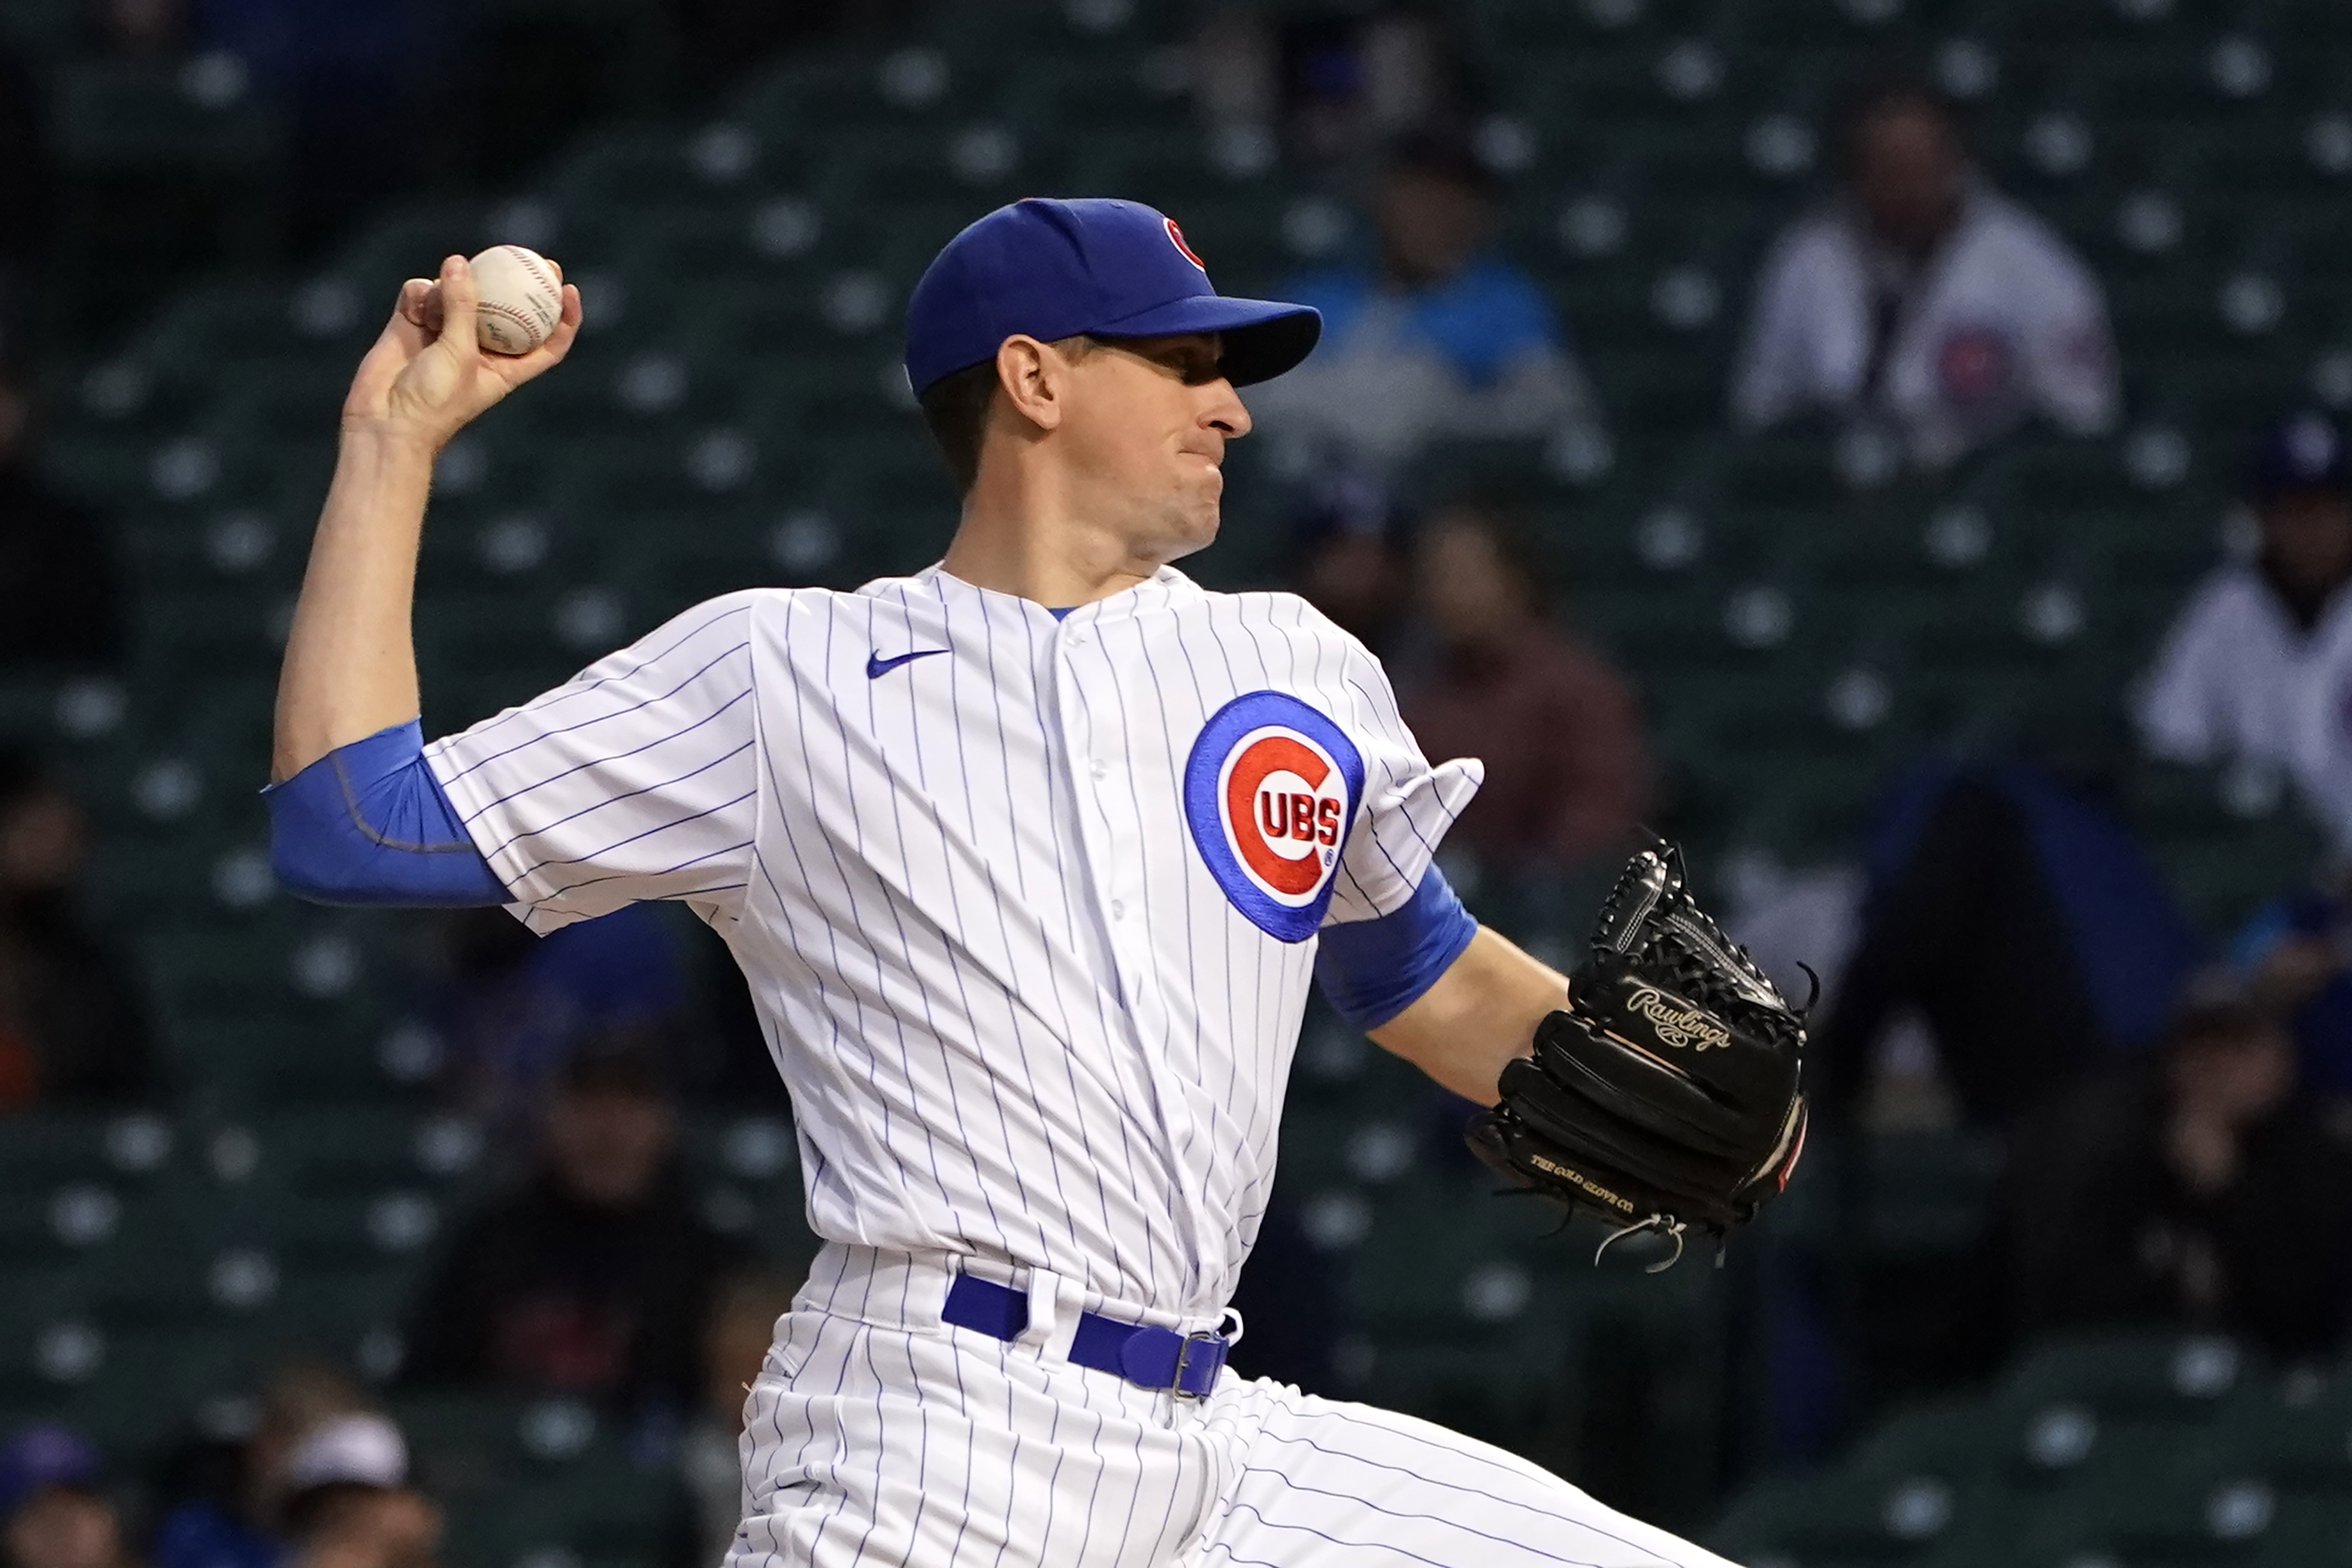 Cubs starting pitcher Kyle Hendricks delivers during the first inning of Wednesday's game against the Twins.